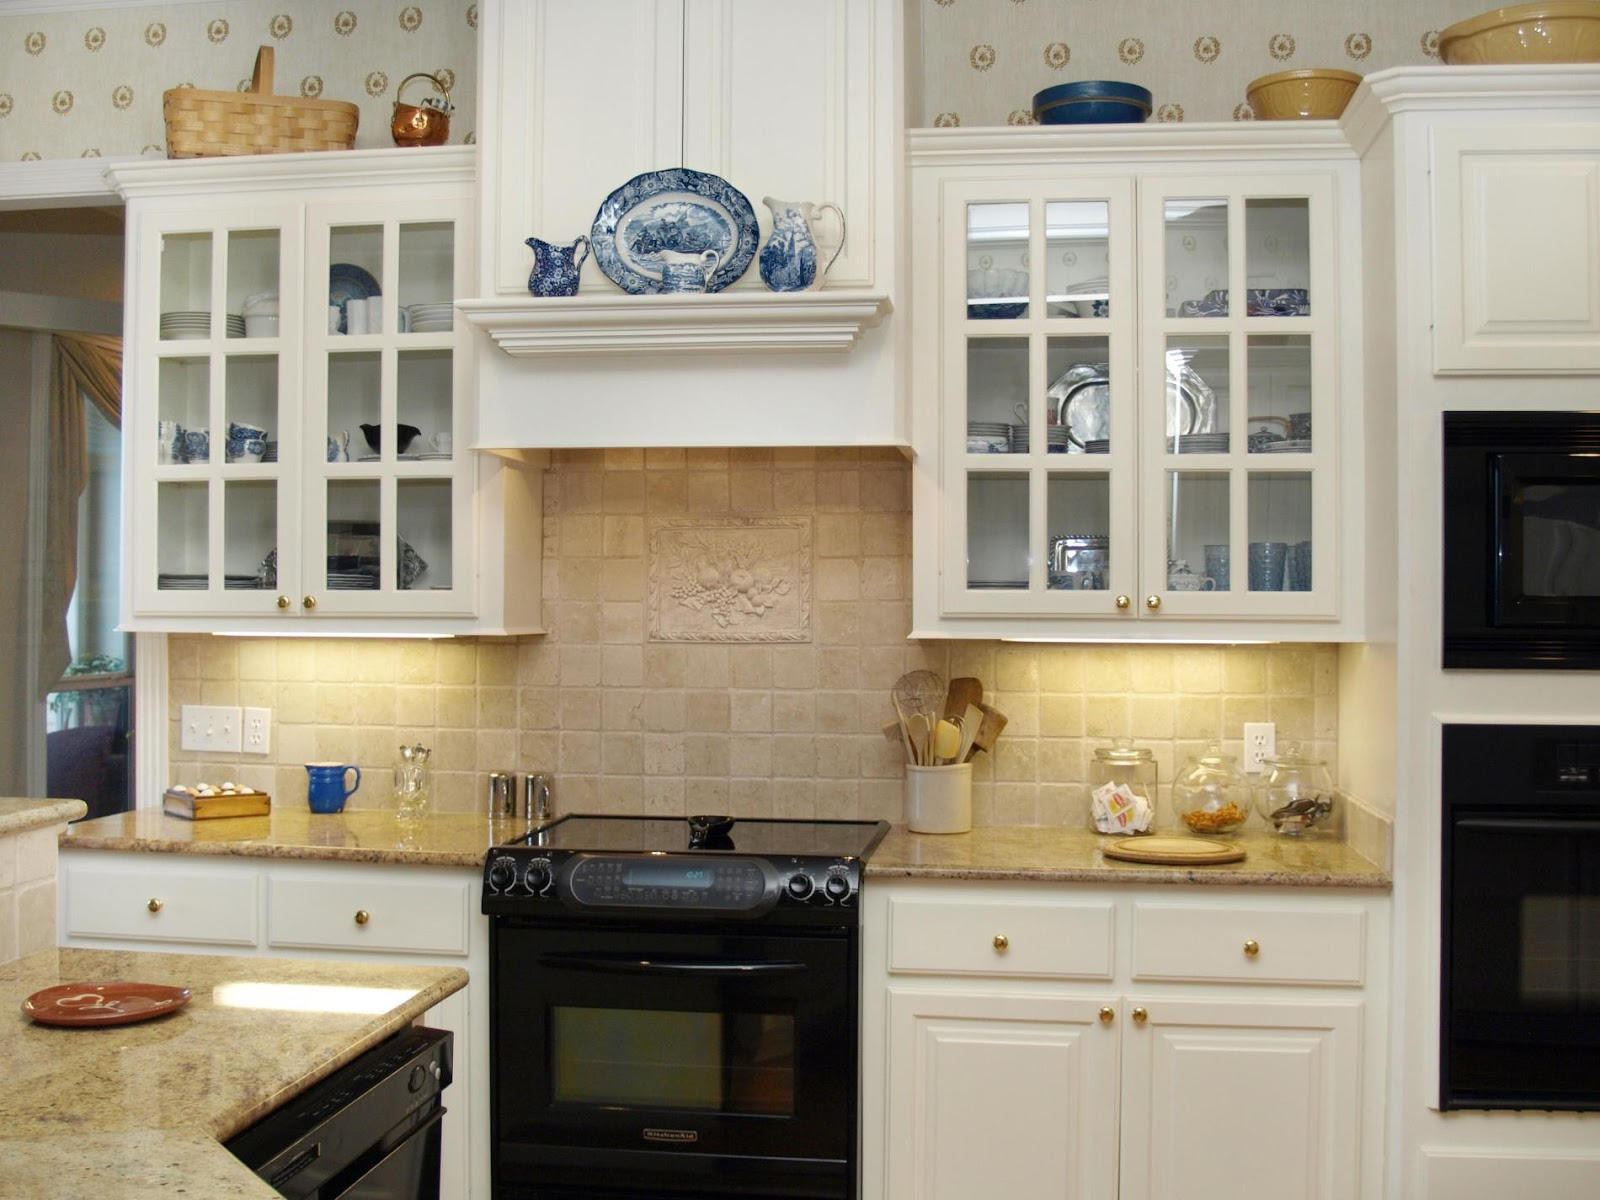 Kitchen shelves decoration dream house experience for Kitchen decorating ideas photos